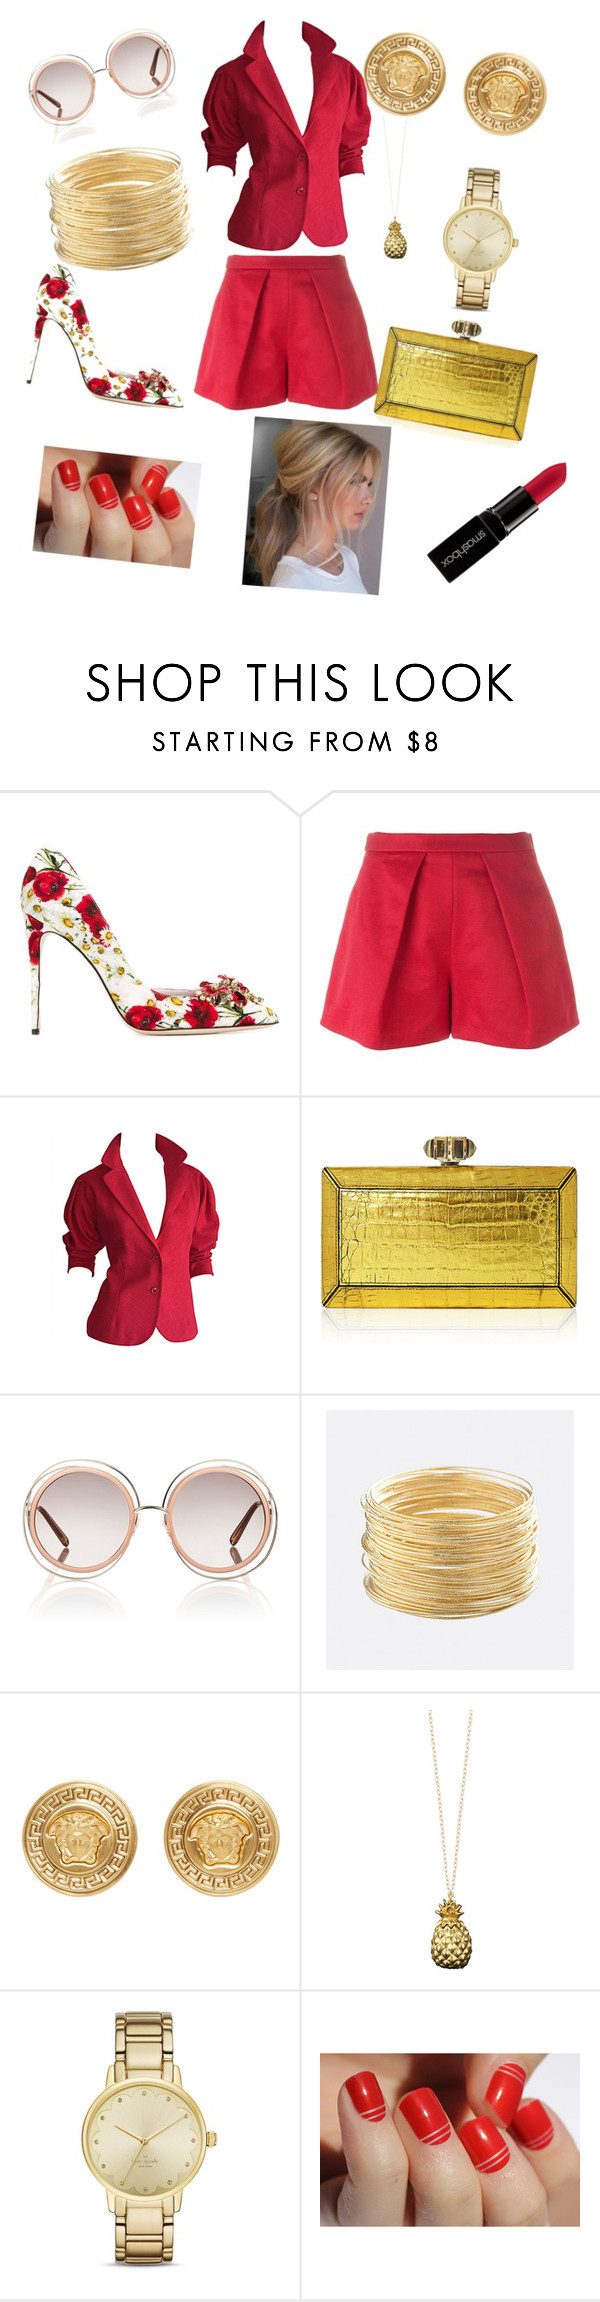 """""""red outfit"""" by didimarley on Polyvore featuring Dolce&Gabbana, MSGM, Halston, Judith Leiber, Chloé, Avenue, Versace, Catherine Zoraida, Kate Spade and Smashbox"""